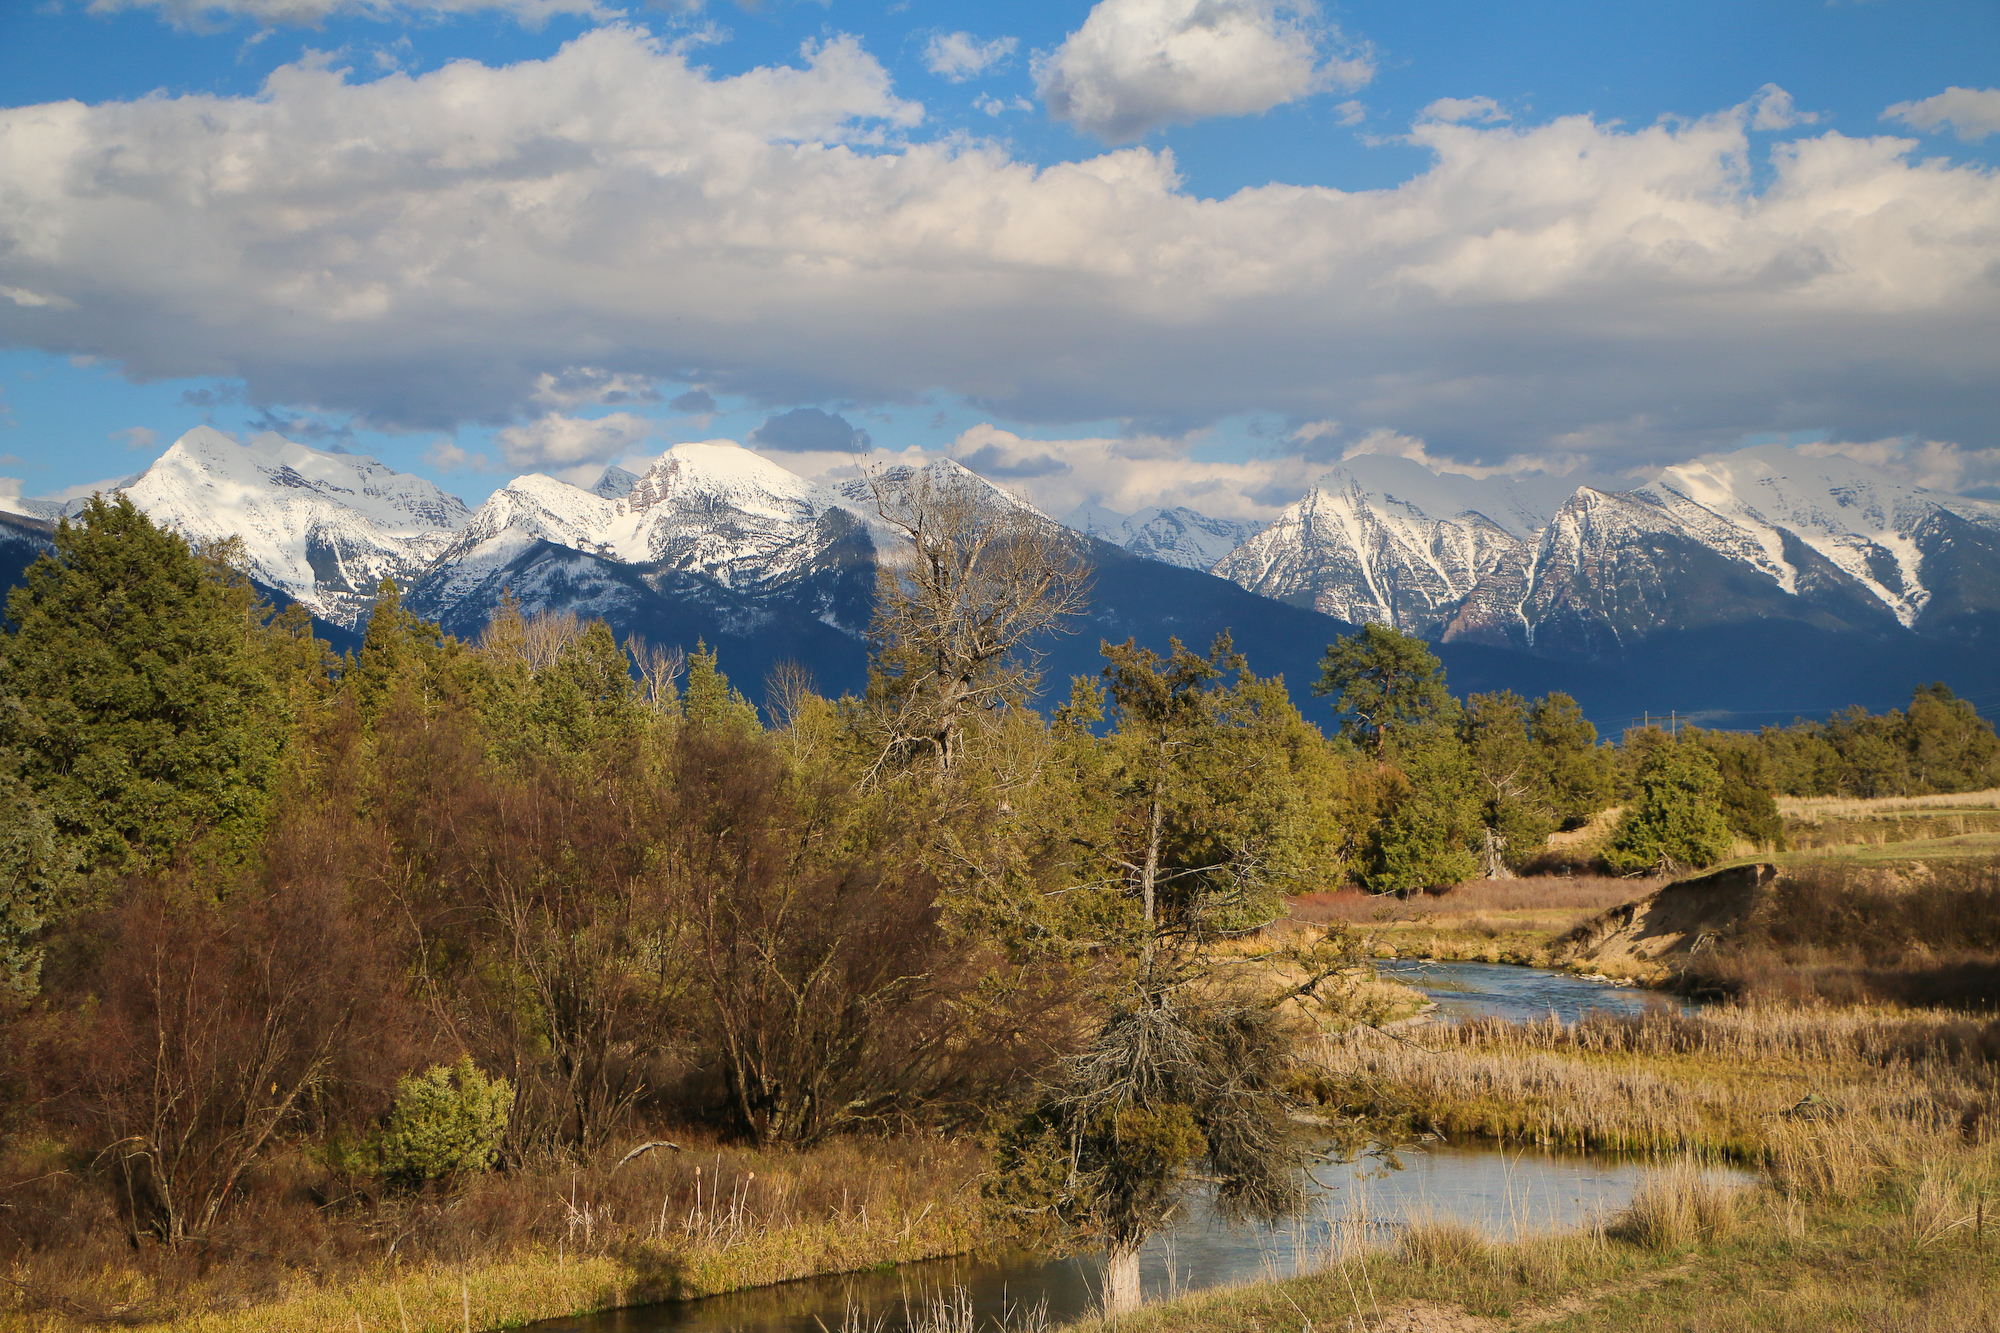 Mission Mountains and Mission Creek